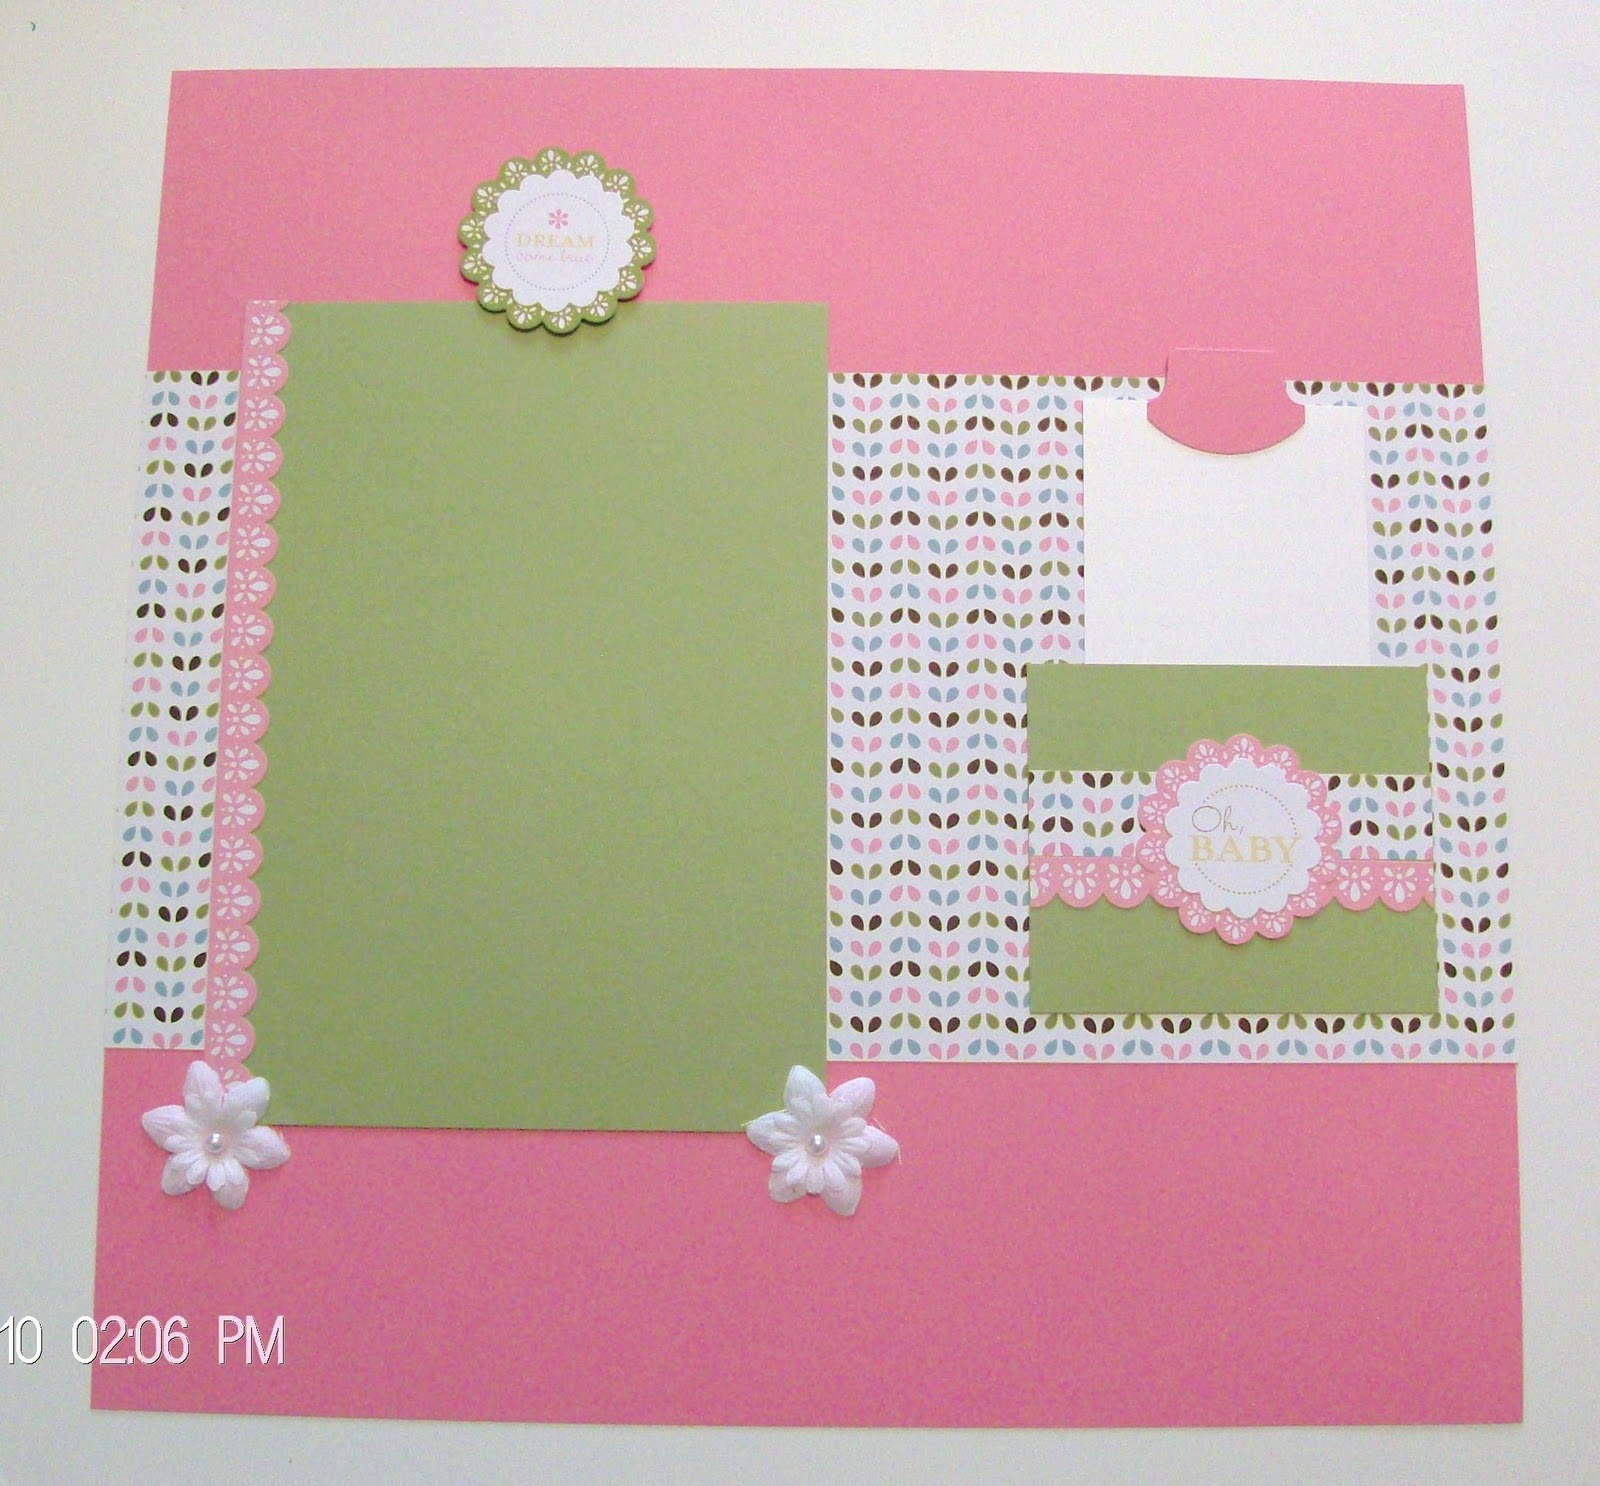 Quick easy scrapbook ideas - The Quick Accents Includes 2 Sheets Of Heavyweight Self Adhesive Die Cuts Which Makes It So Easy To Complete Your Scrapbook Albums